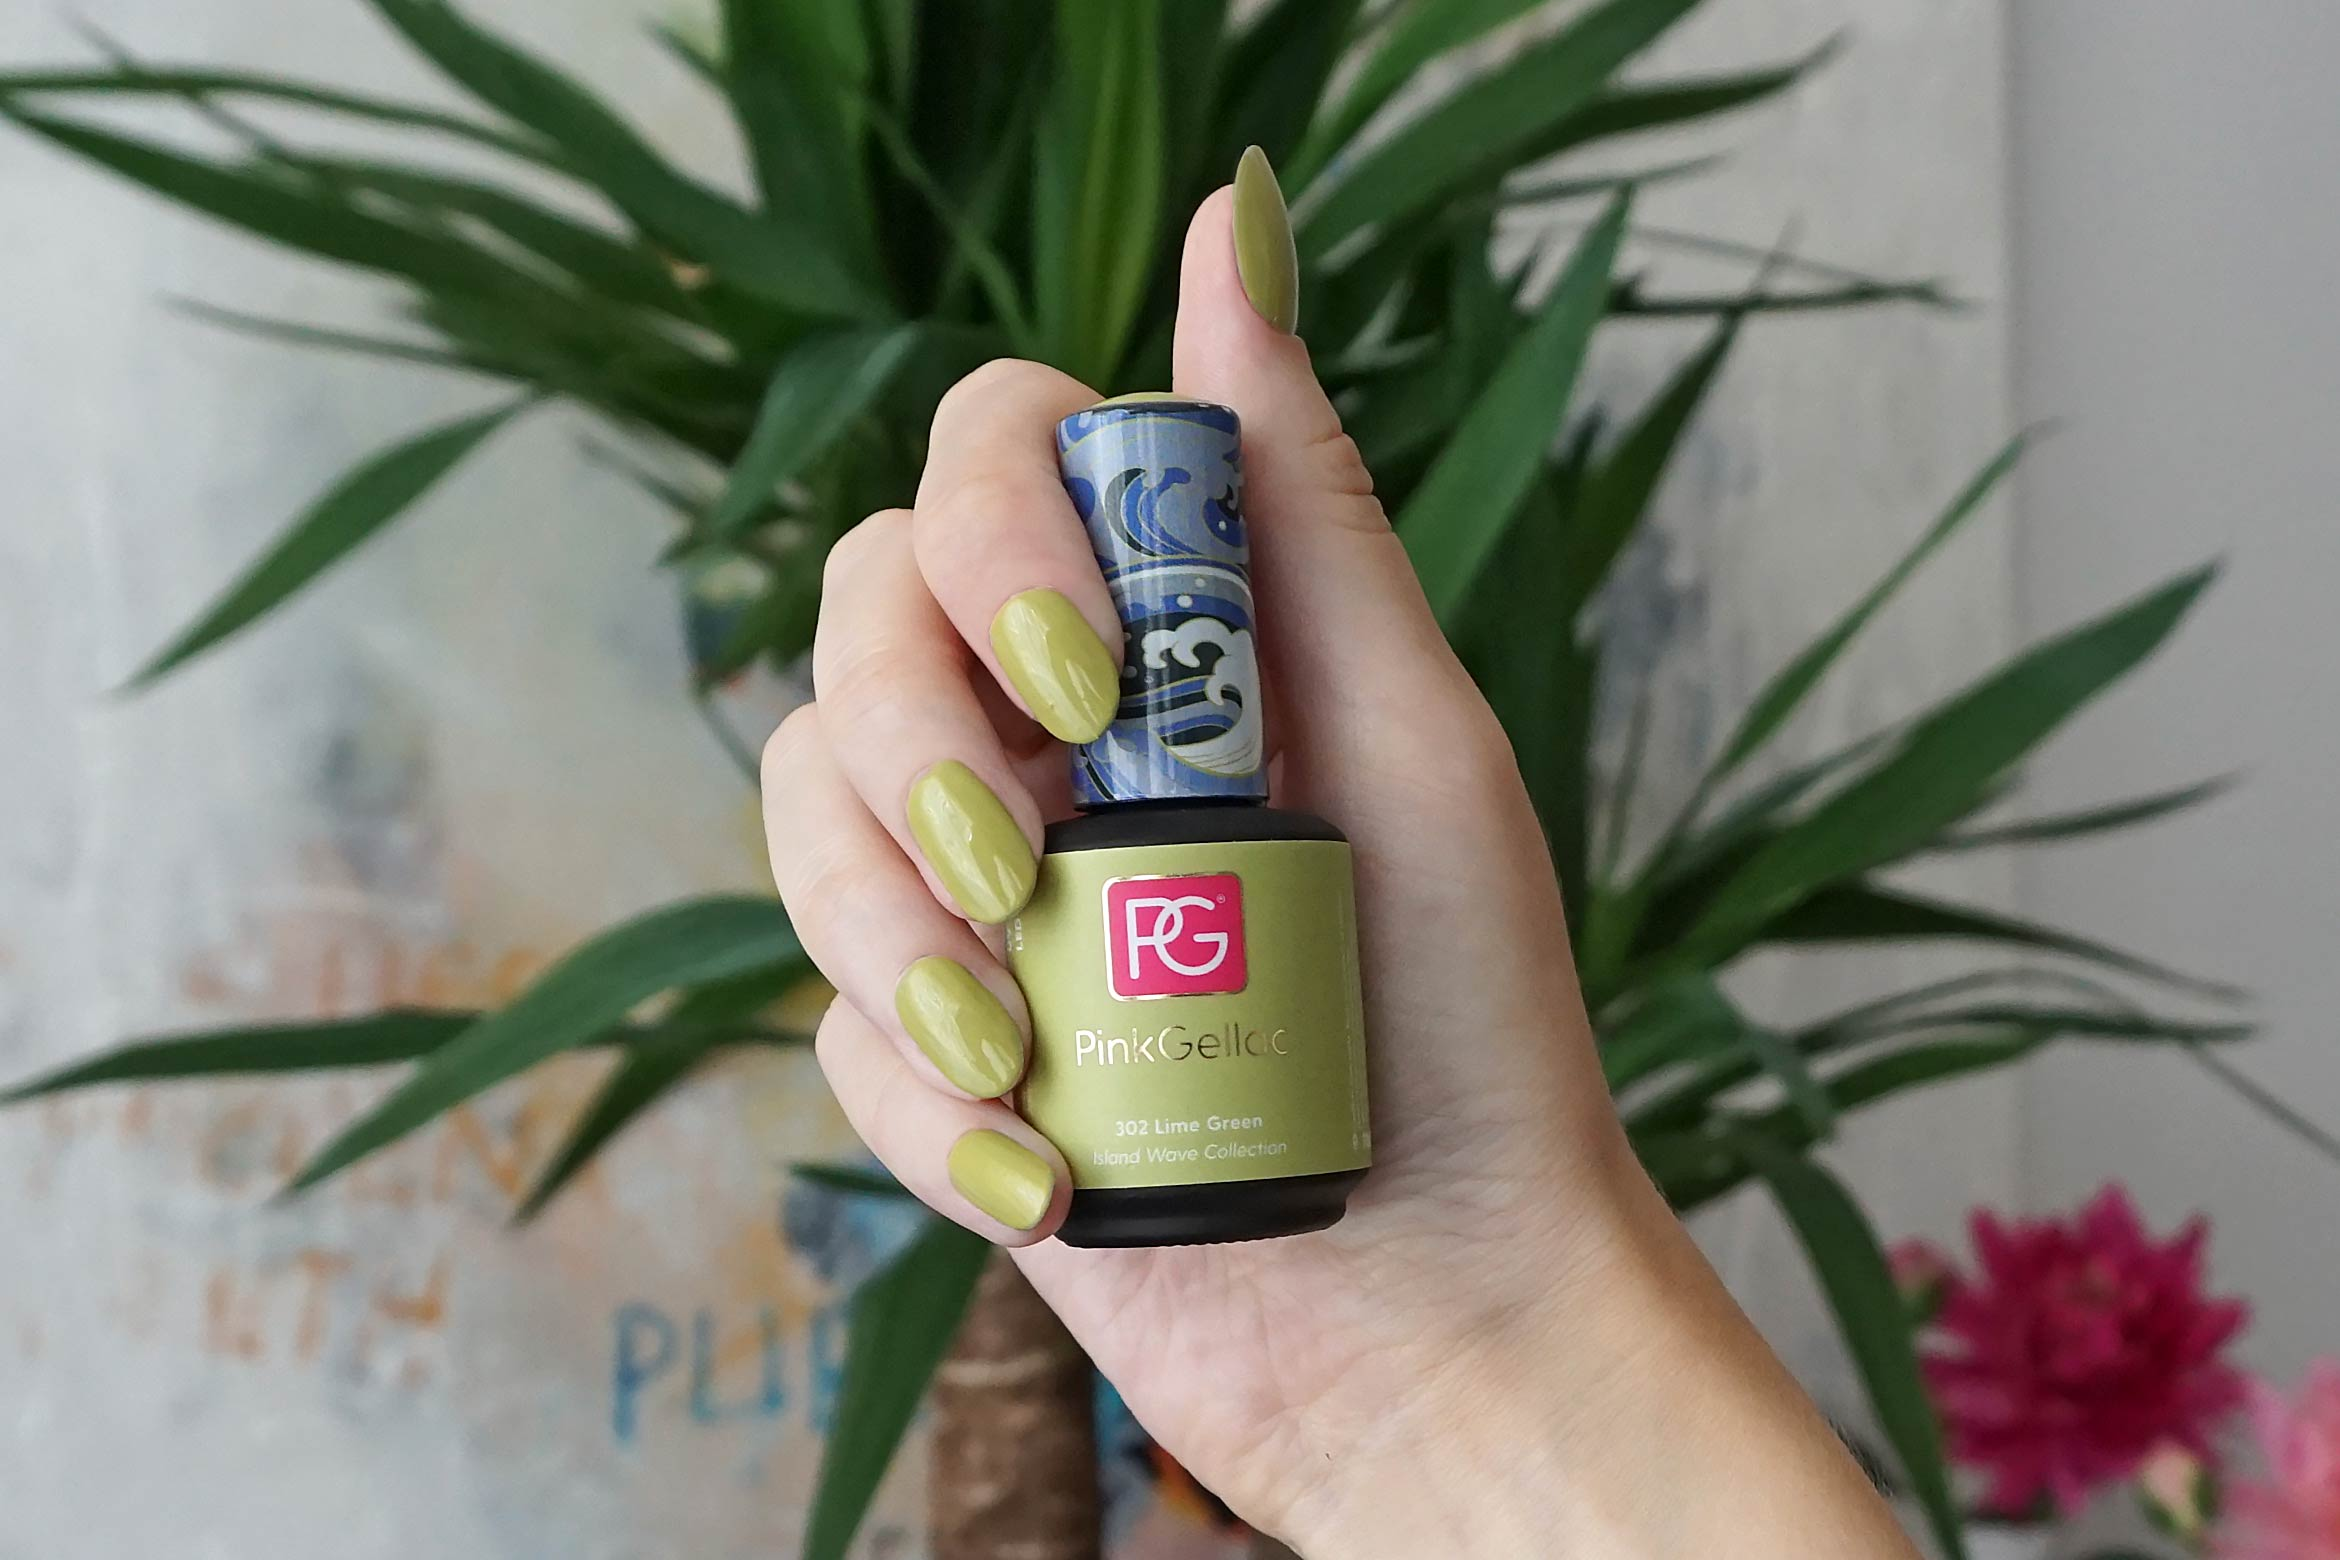 pink gellac 302 lime green swatch